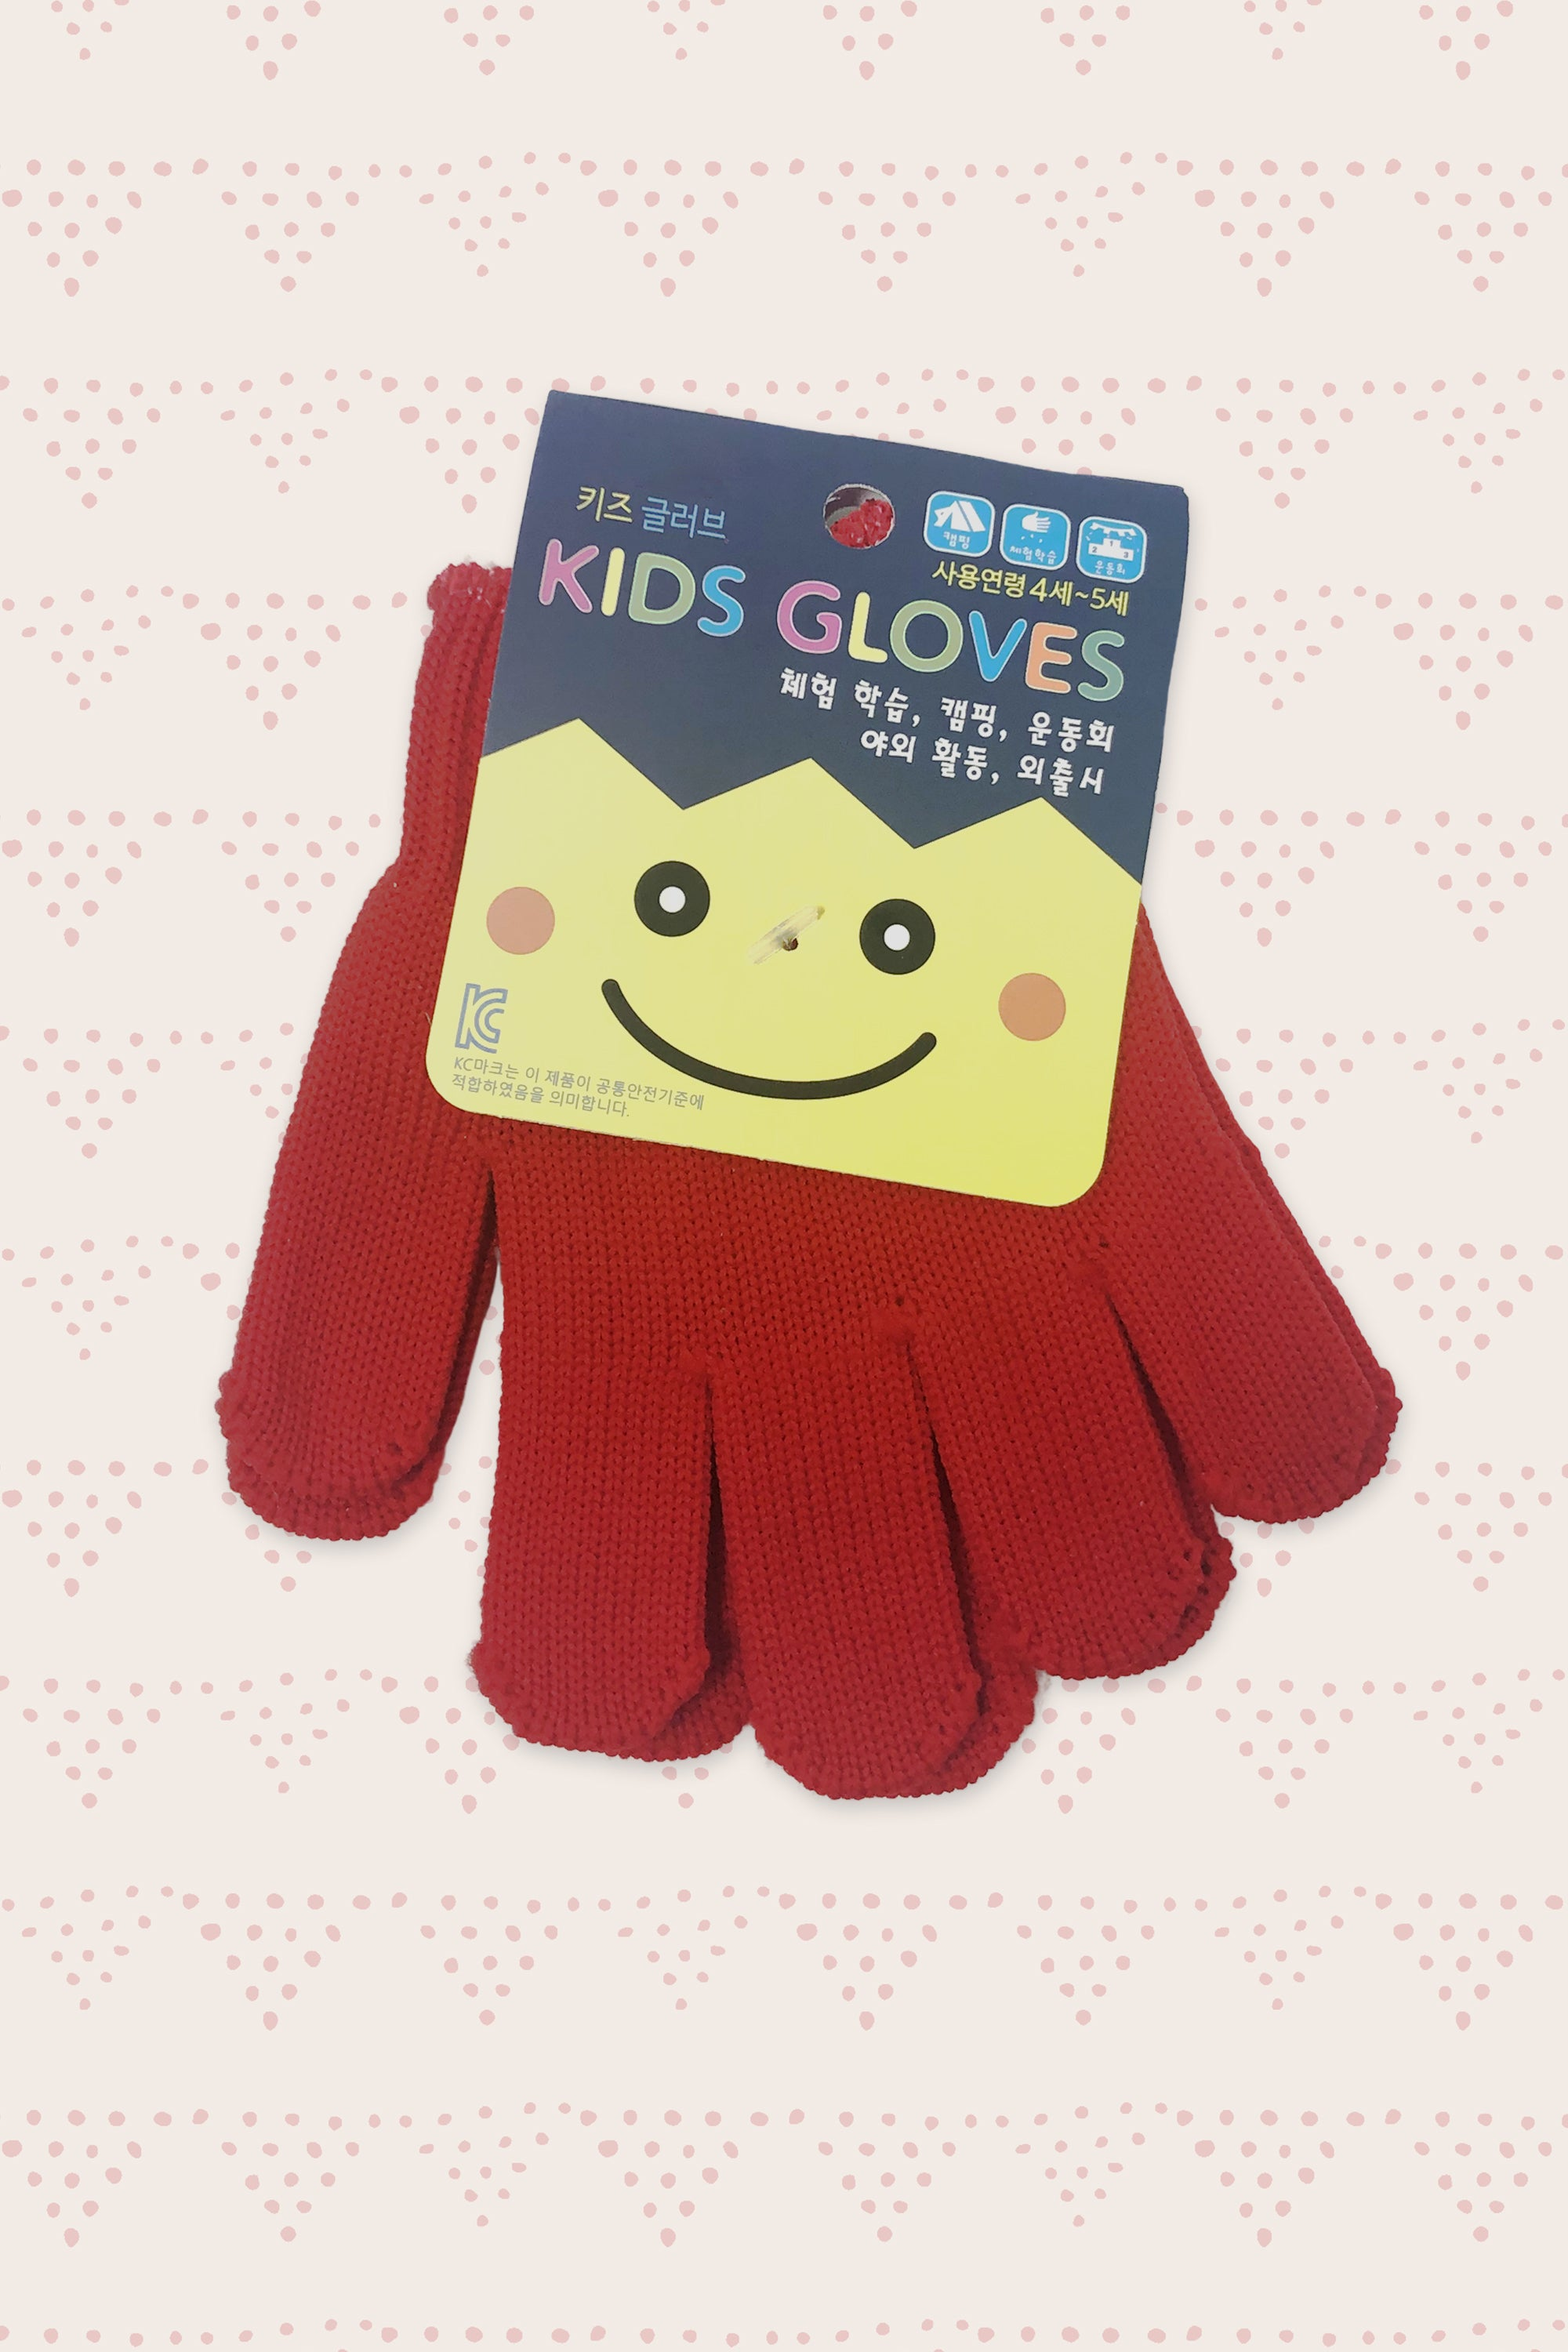 Deulex Protective Play Gloves For Kids